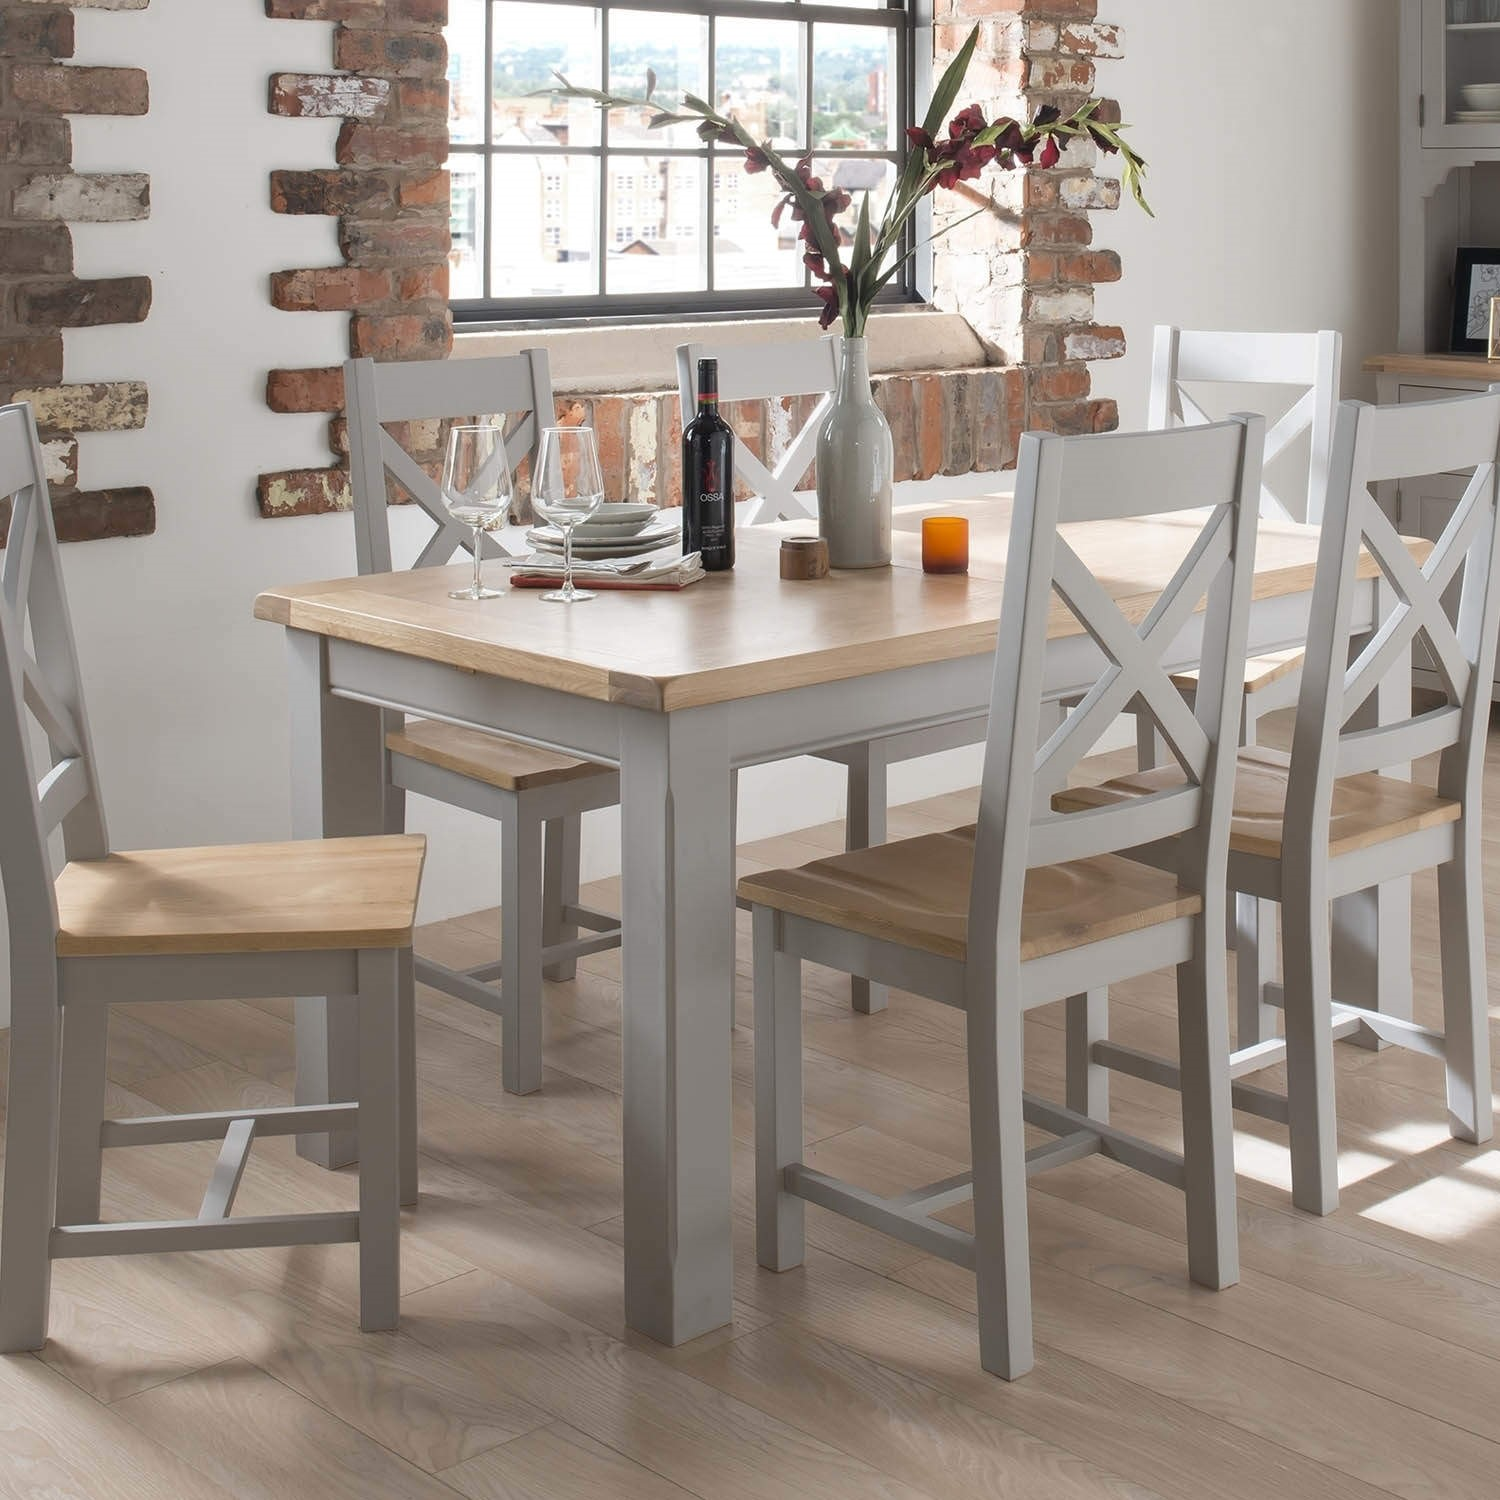 Wilkinson Furniture Clemence Soft Grey And Solid Oak Extending Dining Table    150 190cm